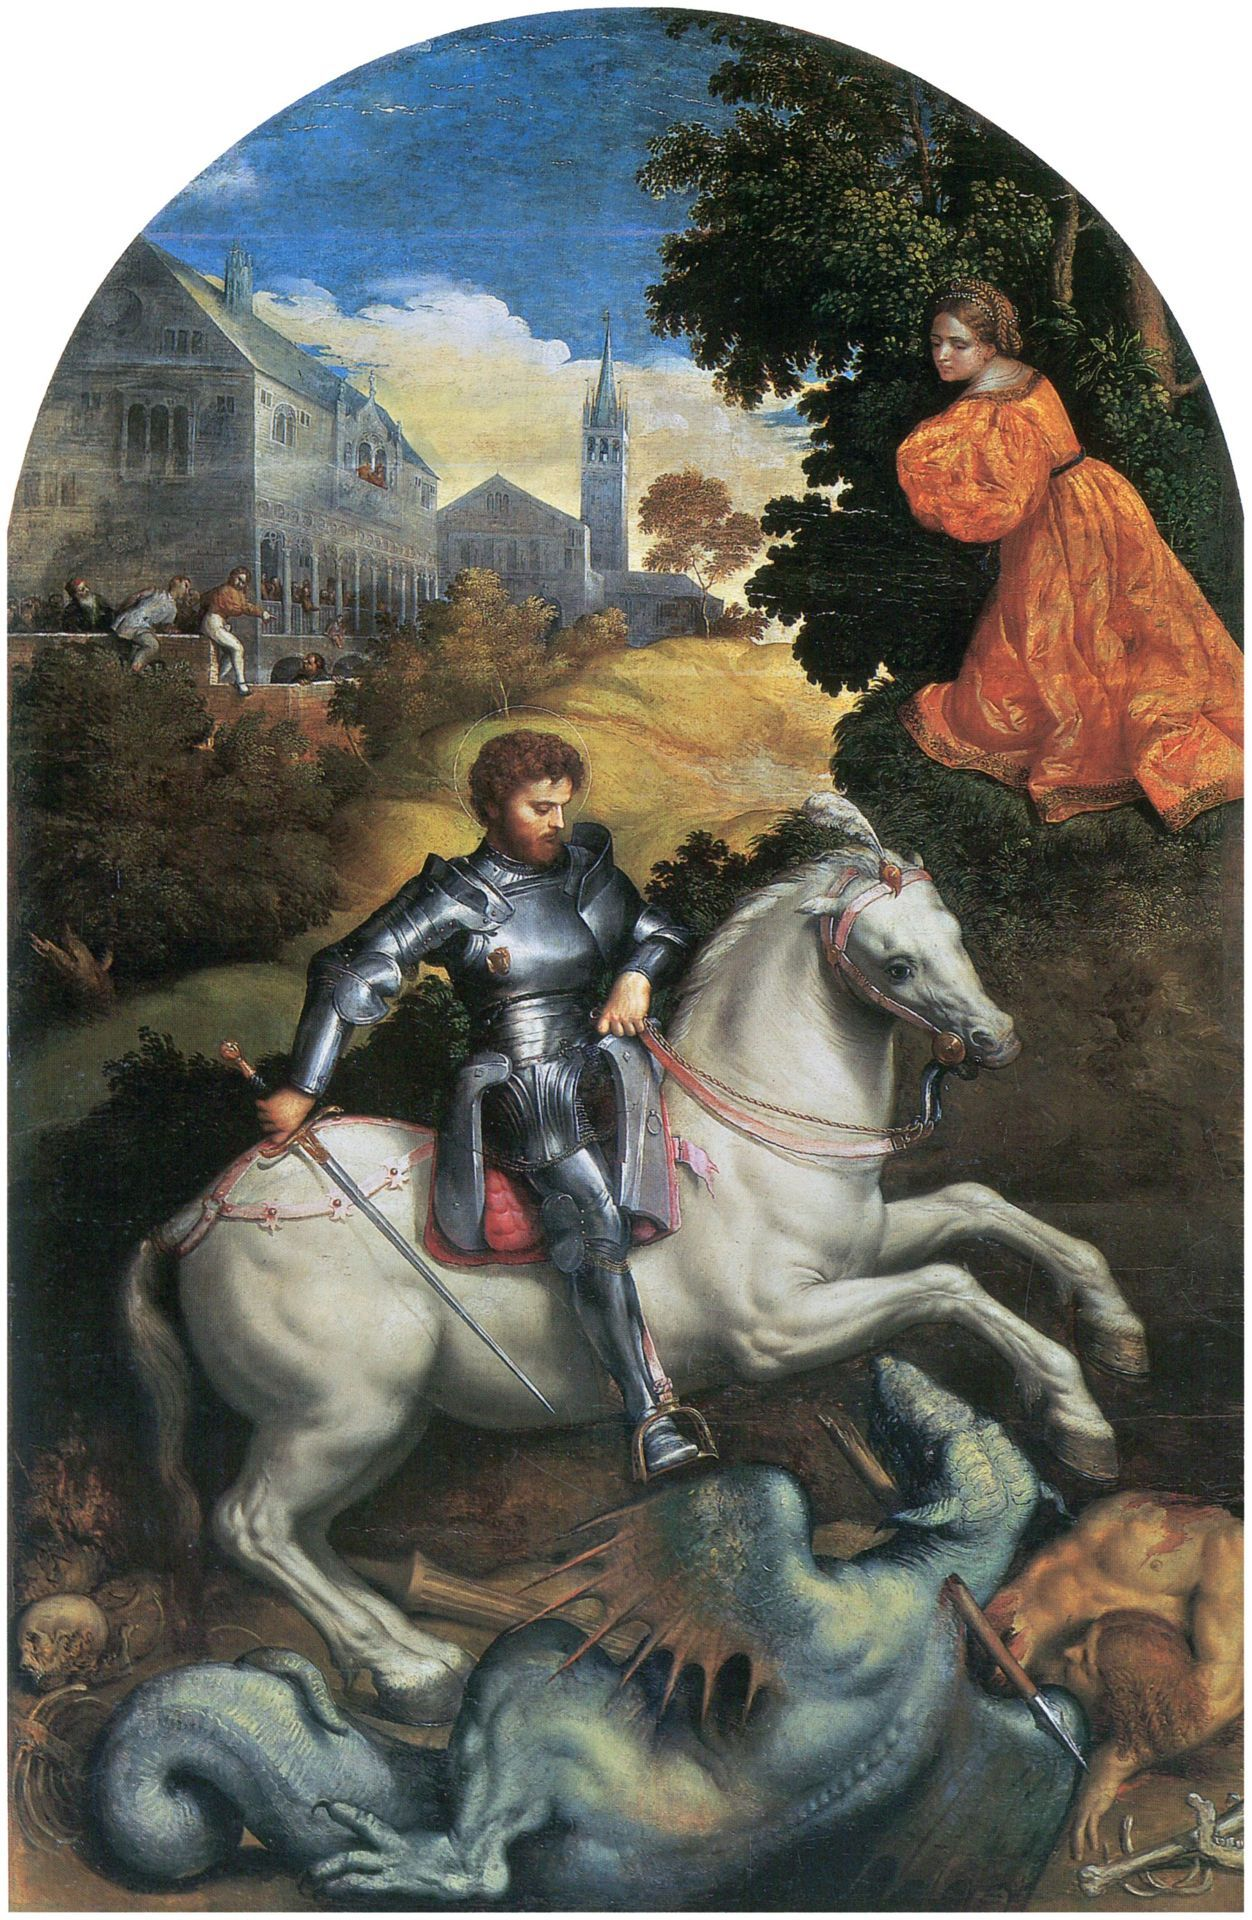 Paris Bordone (1495-1570) : Saint Georges tuant le Dragon (Source : Pinacoteca - Italy).